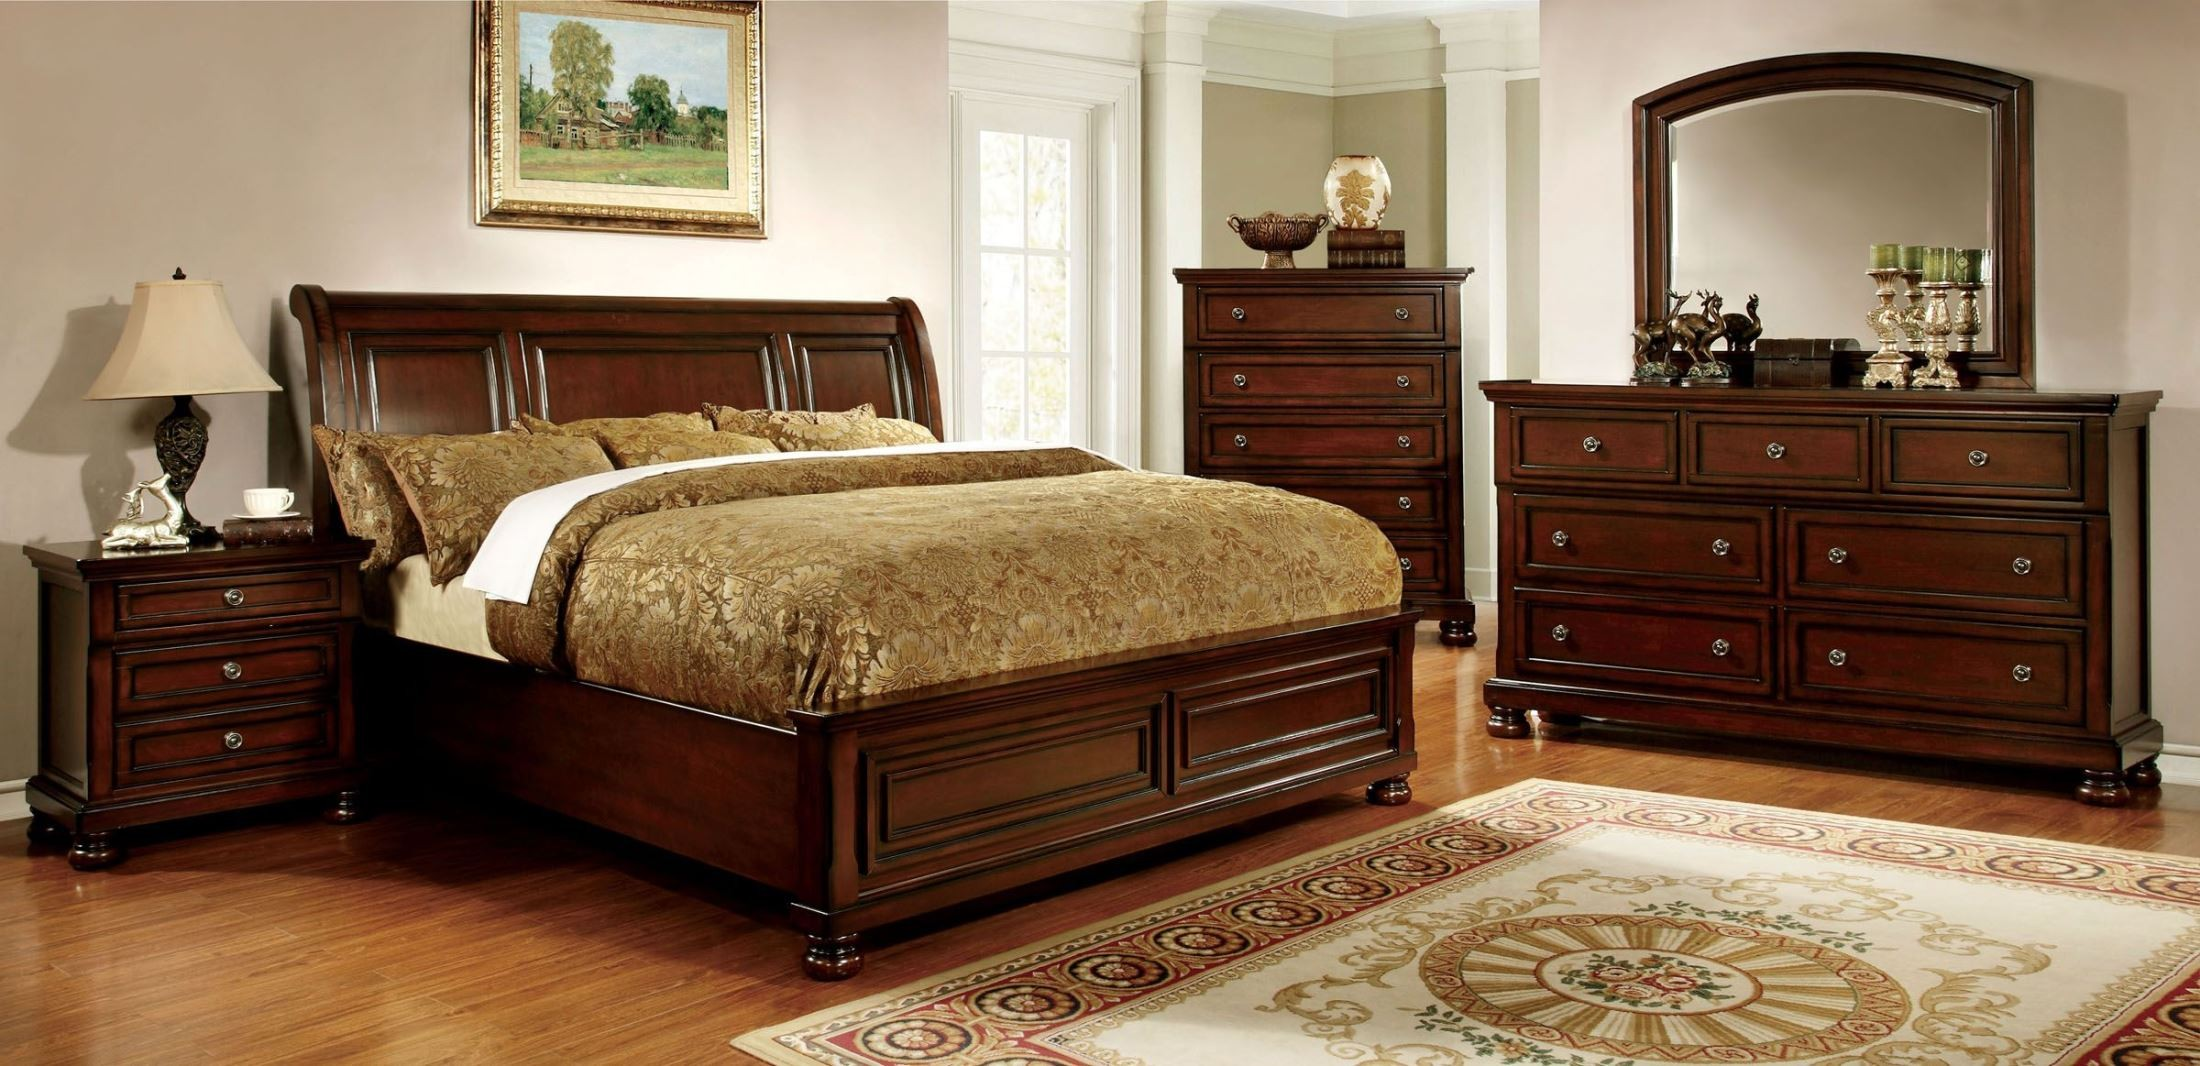 Superbe Northville Dark Cherry Bedroom Set Media Gallery ...